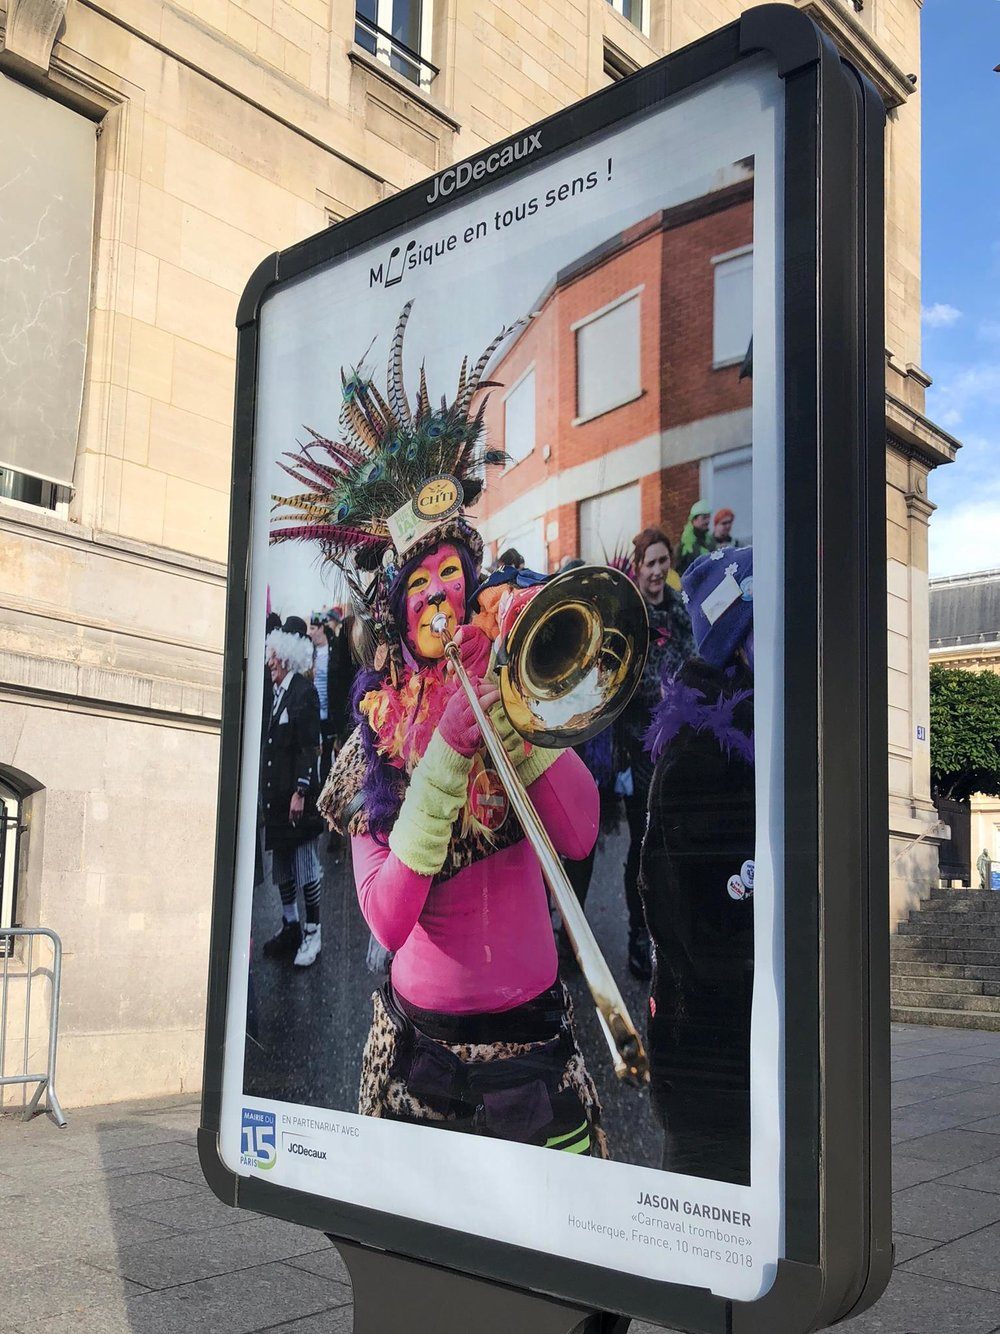 """Carnaval Trombone,"" Houtkerque, France, 10 March 2018"